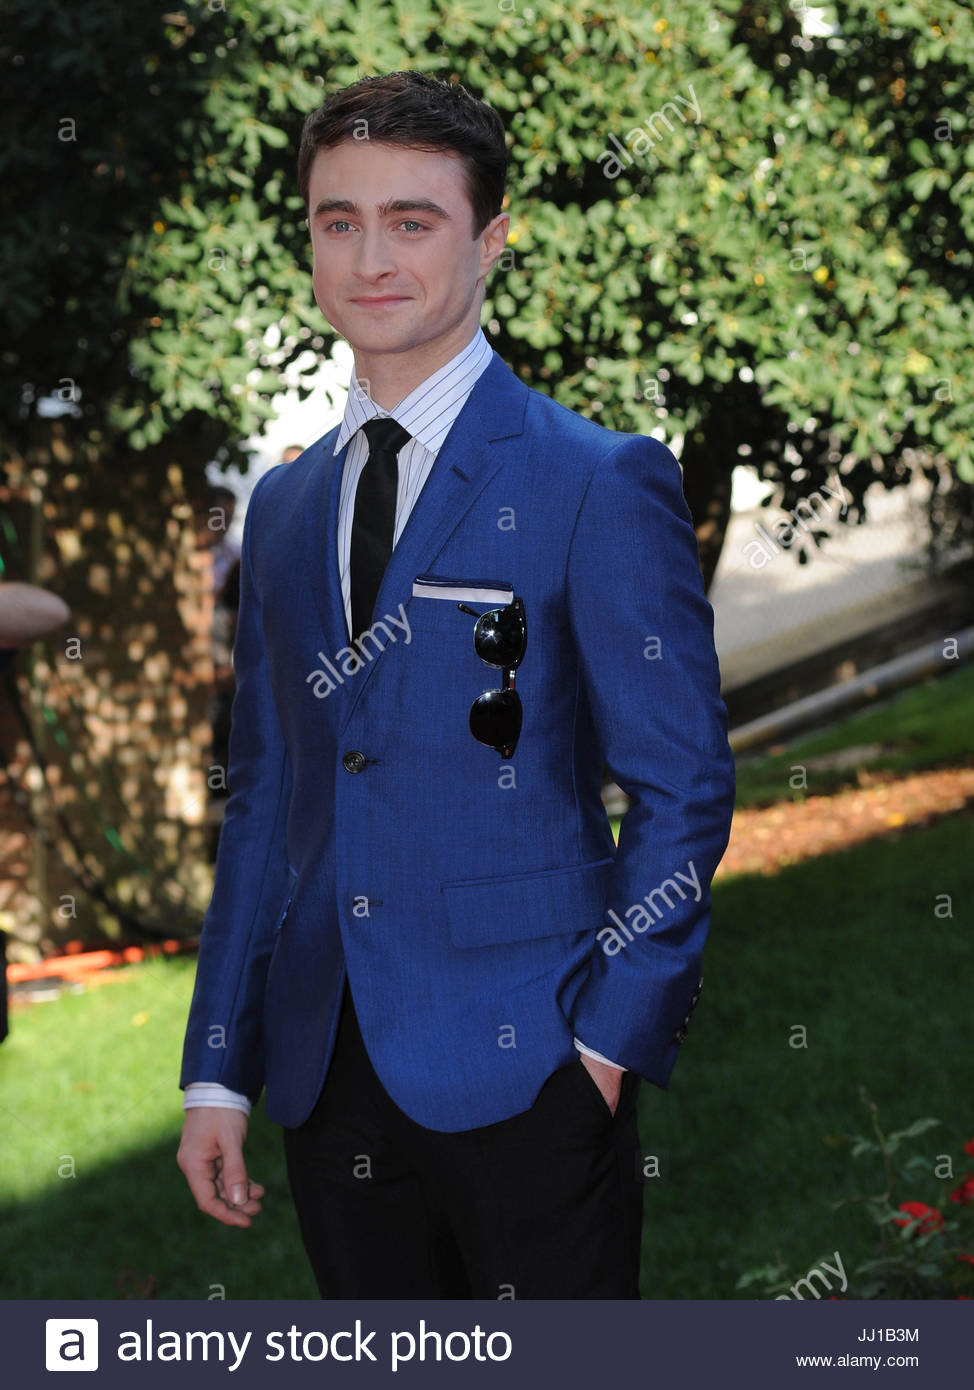 Picture about daniel jacob radcliffe all about man and male - Daniel Jacob Radcliffe Daniel Jacob Radcliffe Arriving At The Red Carpet